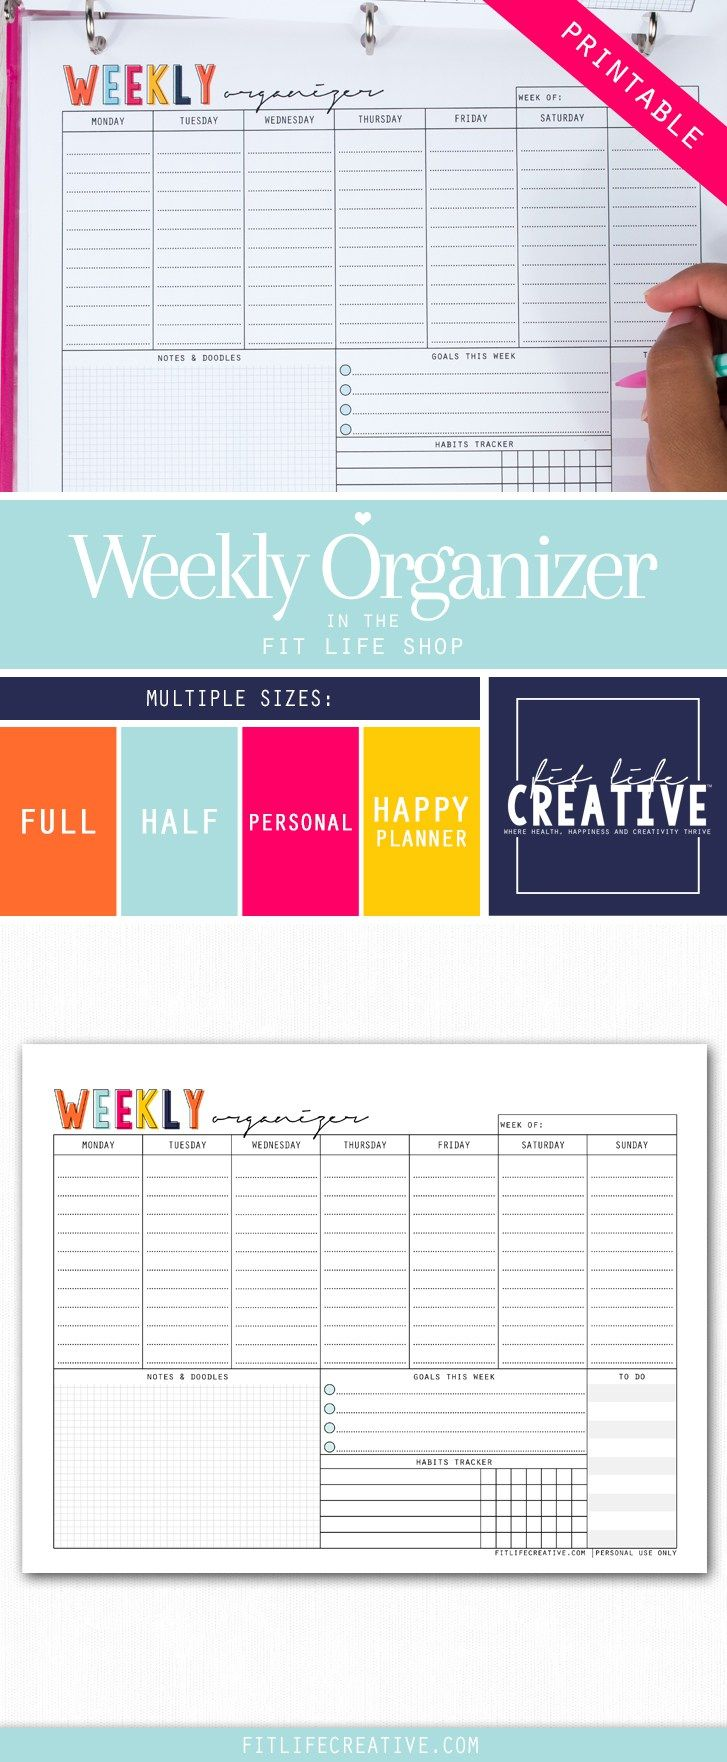 Printable Weekly Organizer to help you organize your full week , goals and ideas.